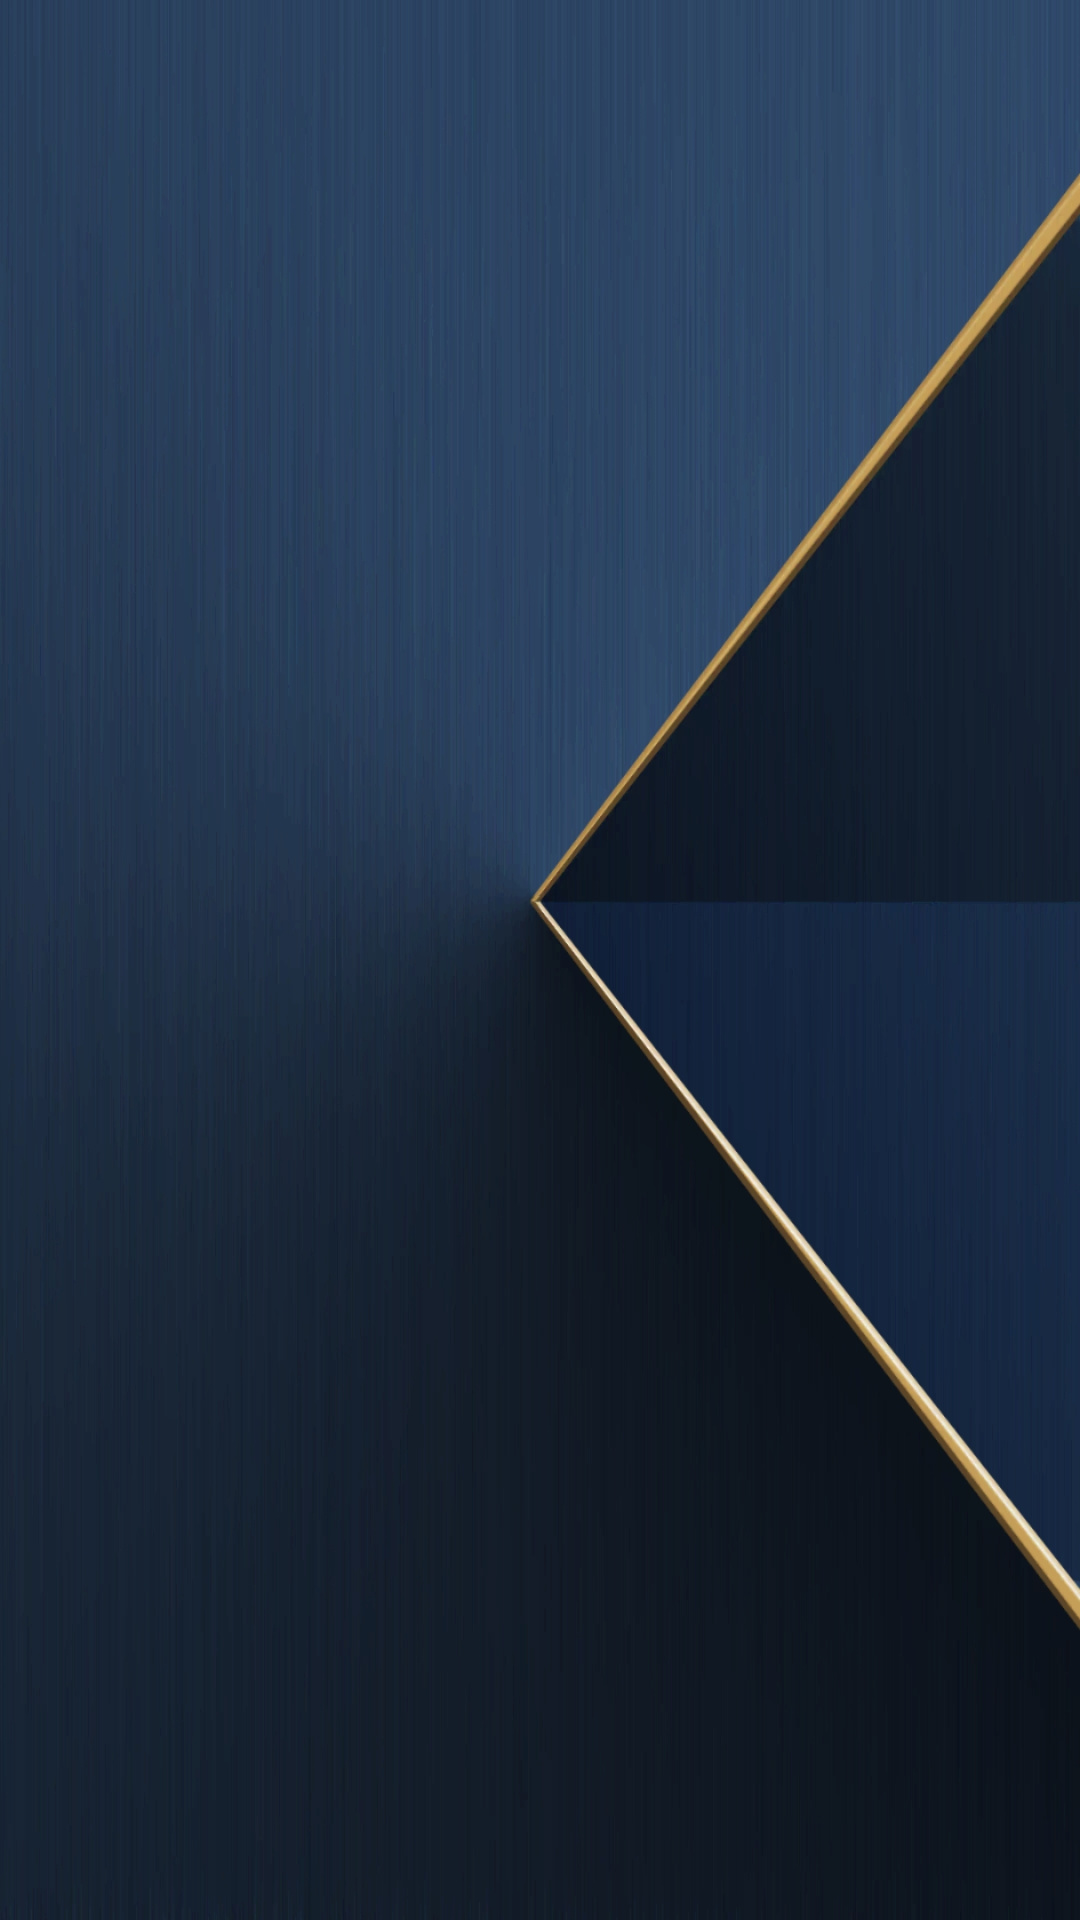 Abstract Mobile Wallpapers   Blue Gold Wallpaper Hd 385005   HD 1080x1920